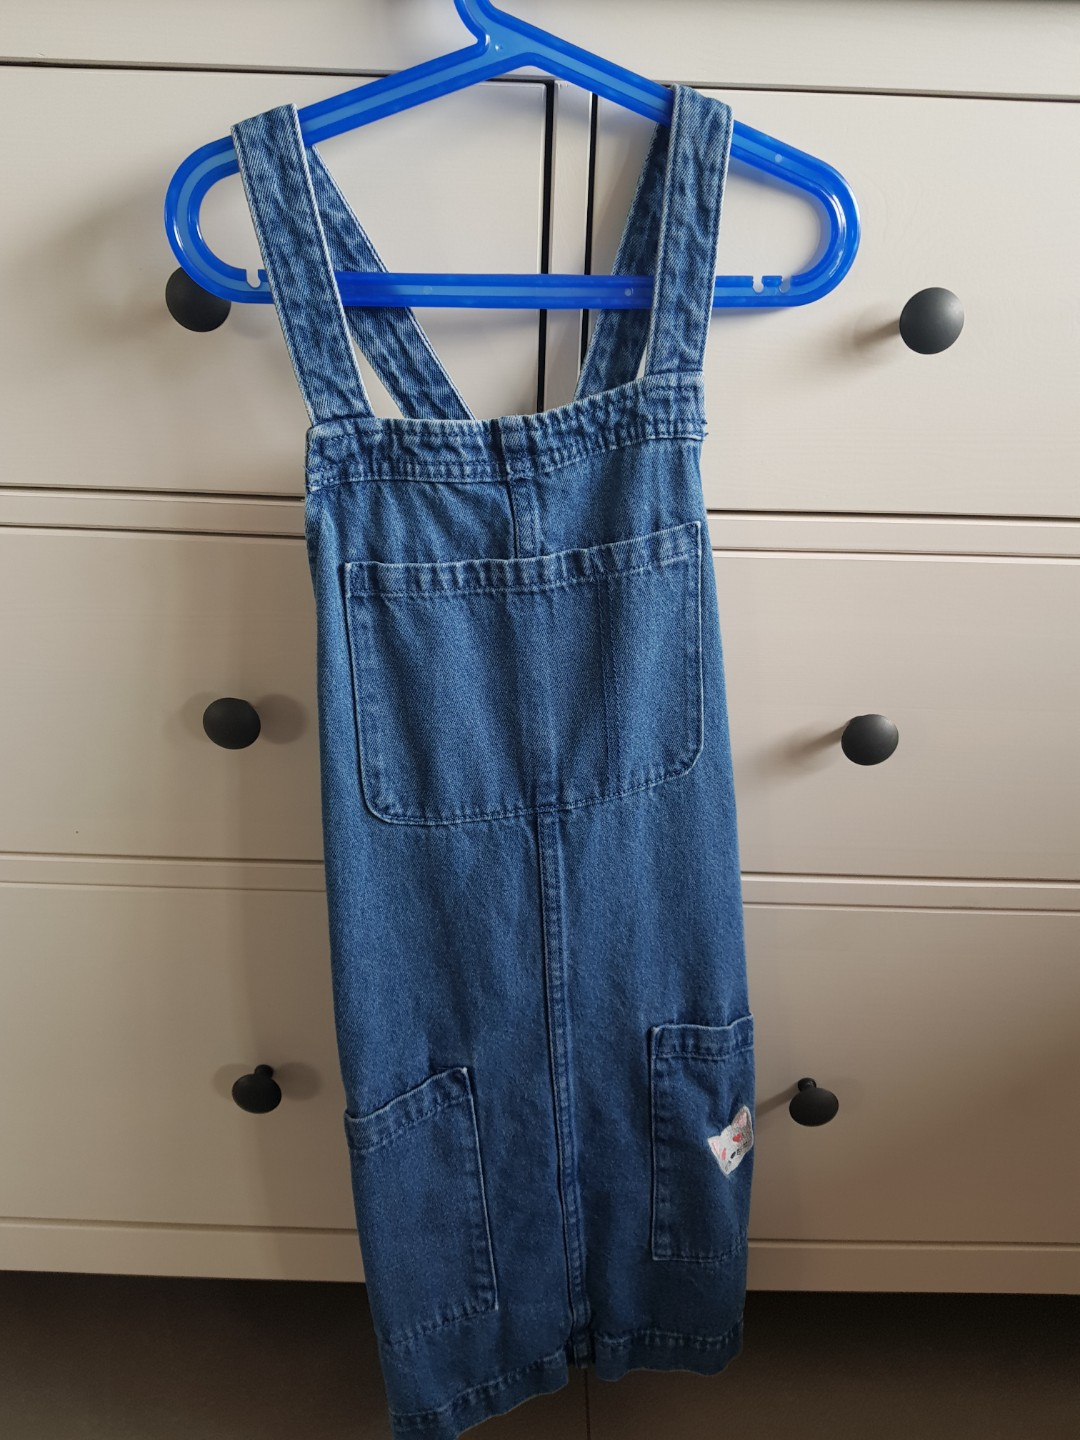 17afb02797 Cotton On cute denim overalls dress, Women's Fashion, Clothes ...